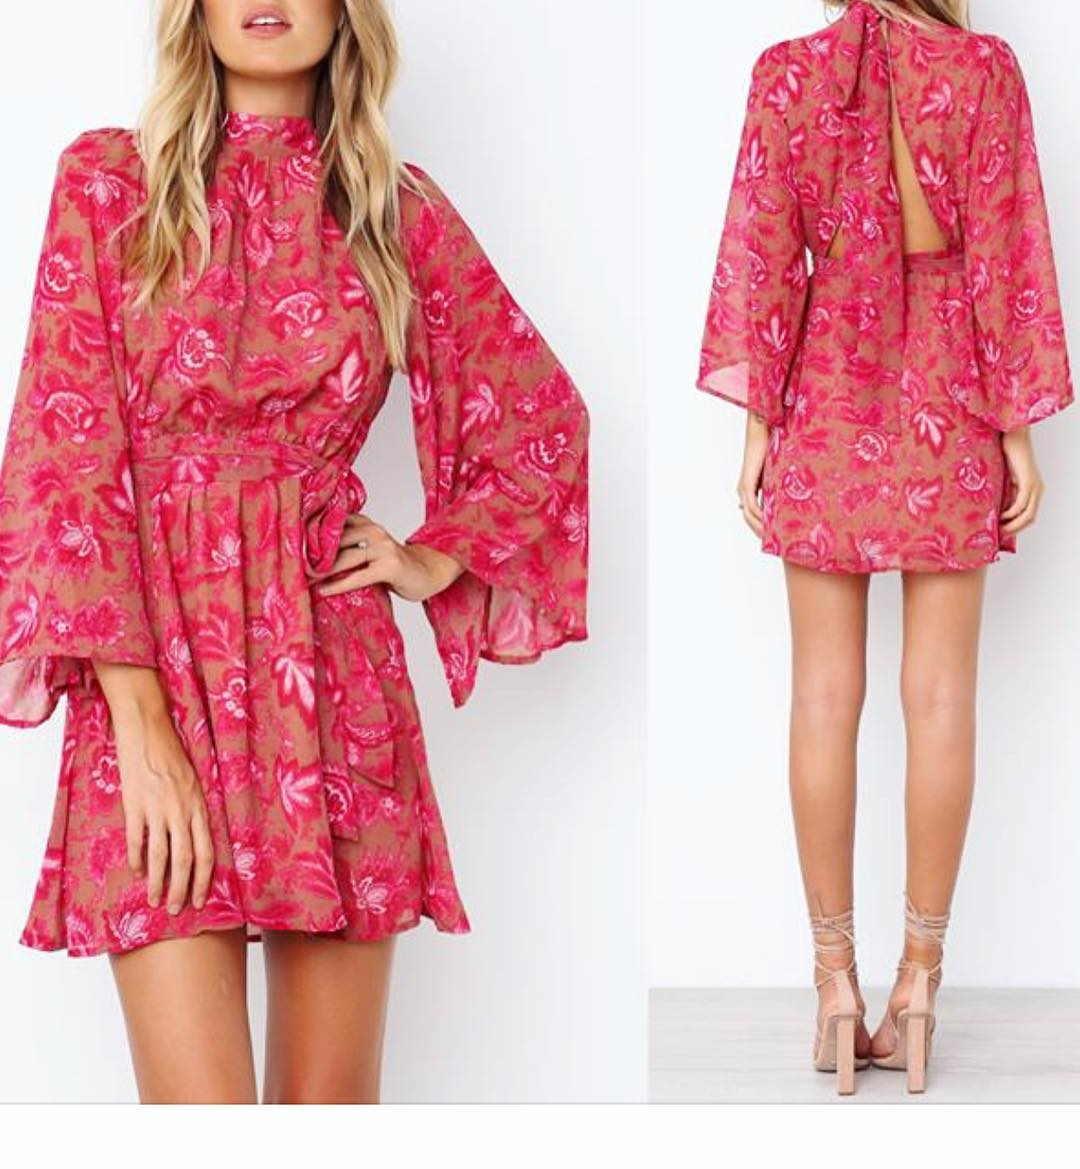 Full Sleeves Designer Back Knot Short Dress To Stay Fashionable This Summer